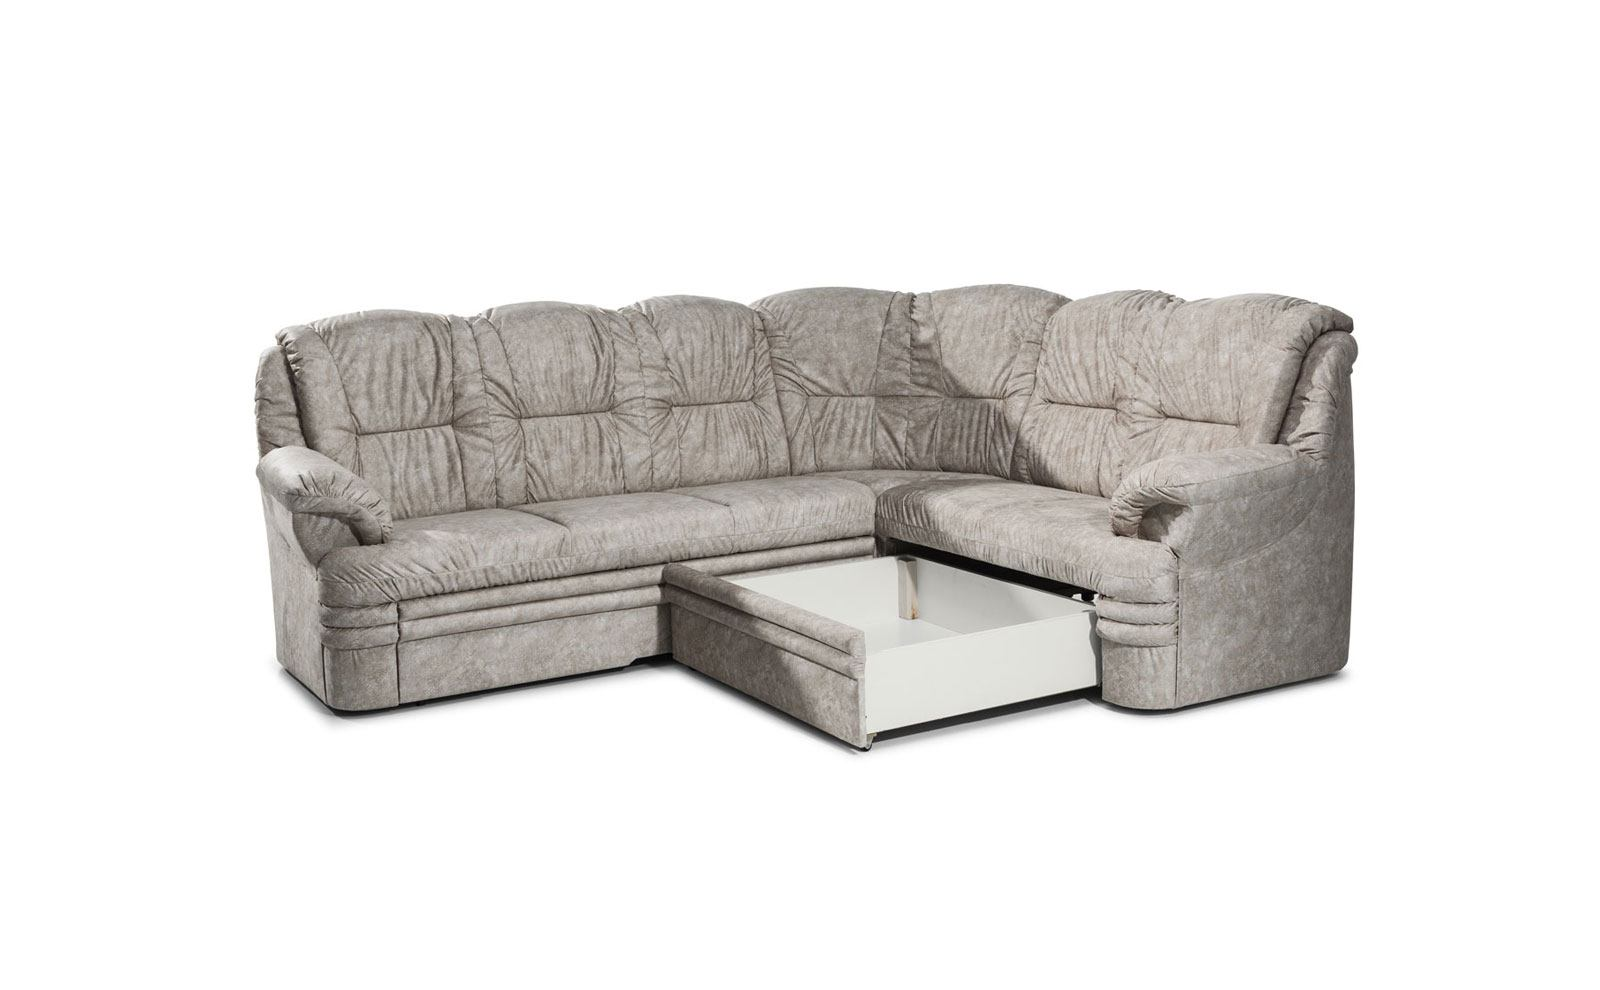 Dubai Corner Sofa Bed